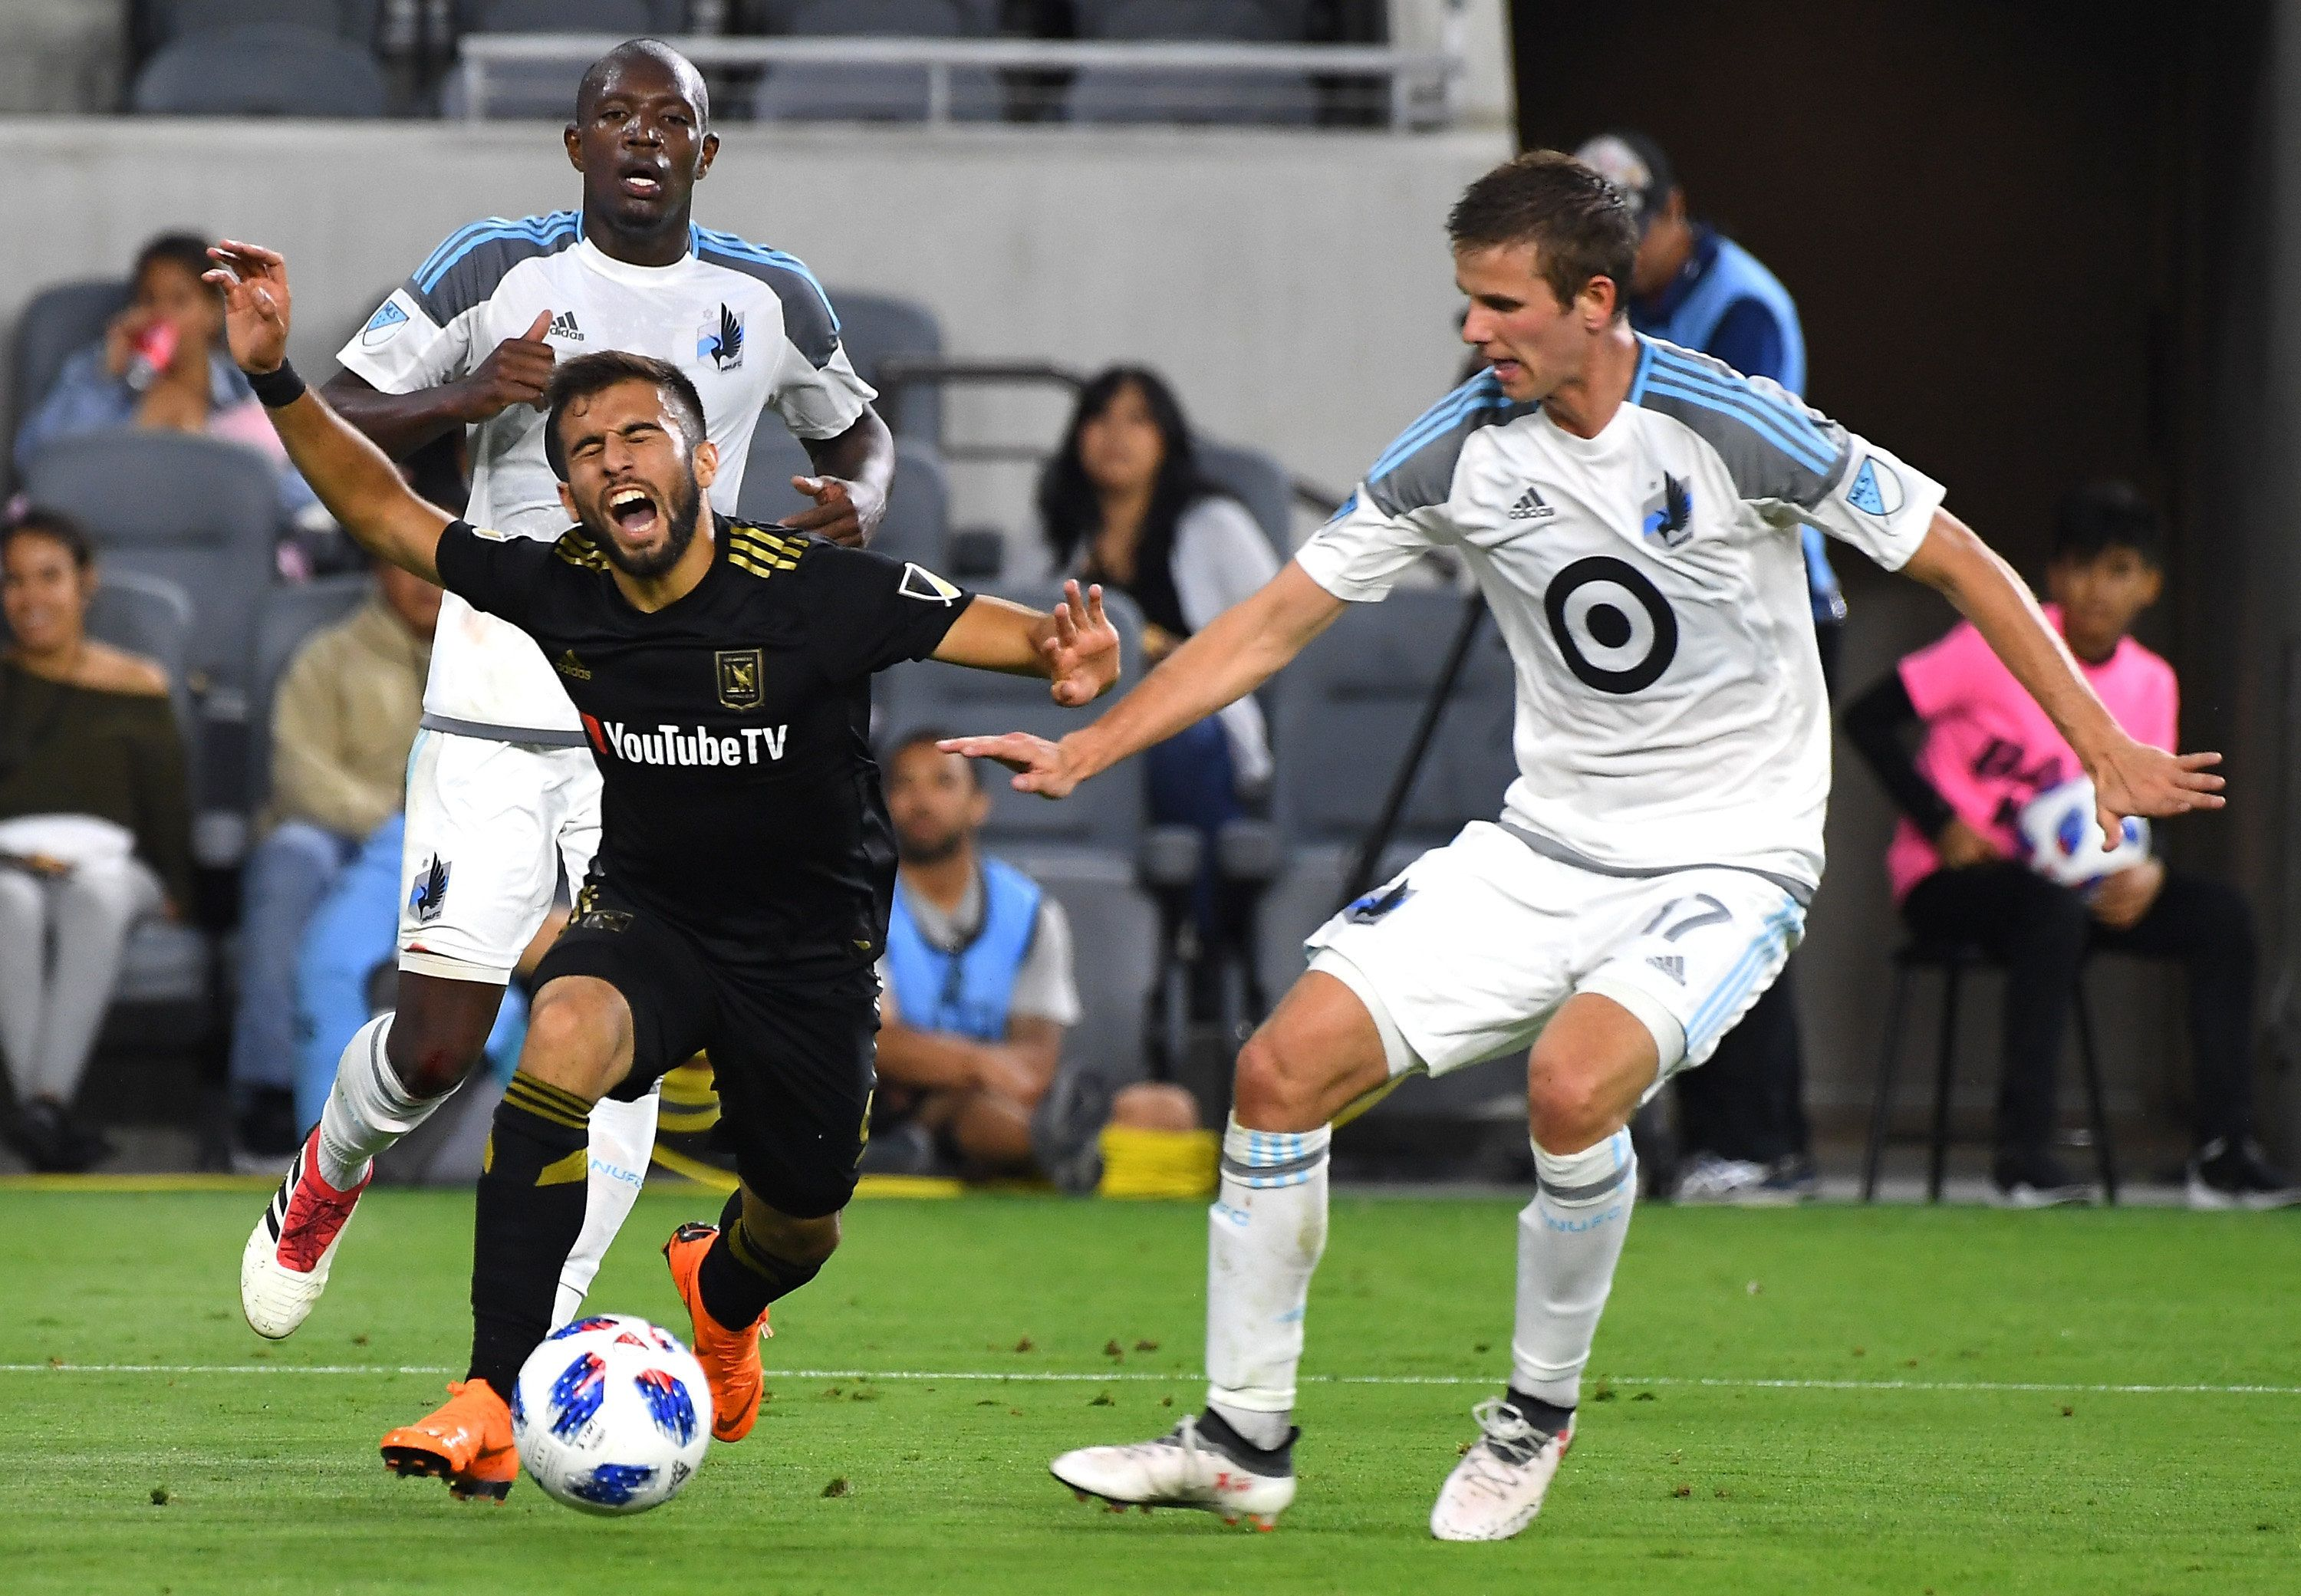 Minnesota United player publicly comes out as gay ahead of Pride match